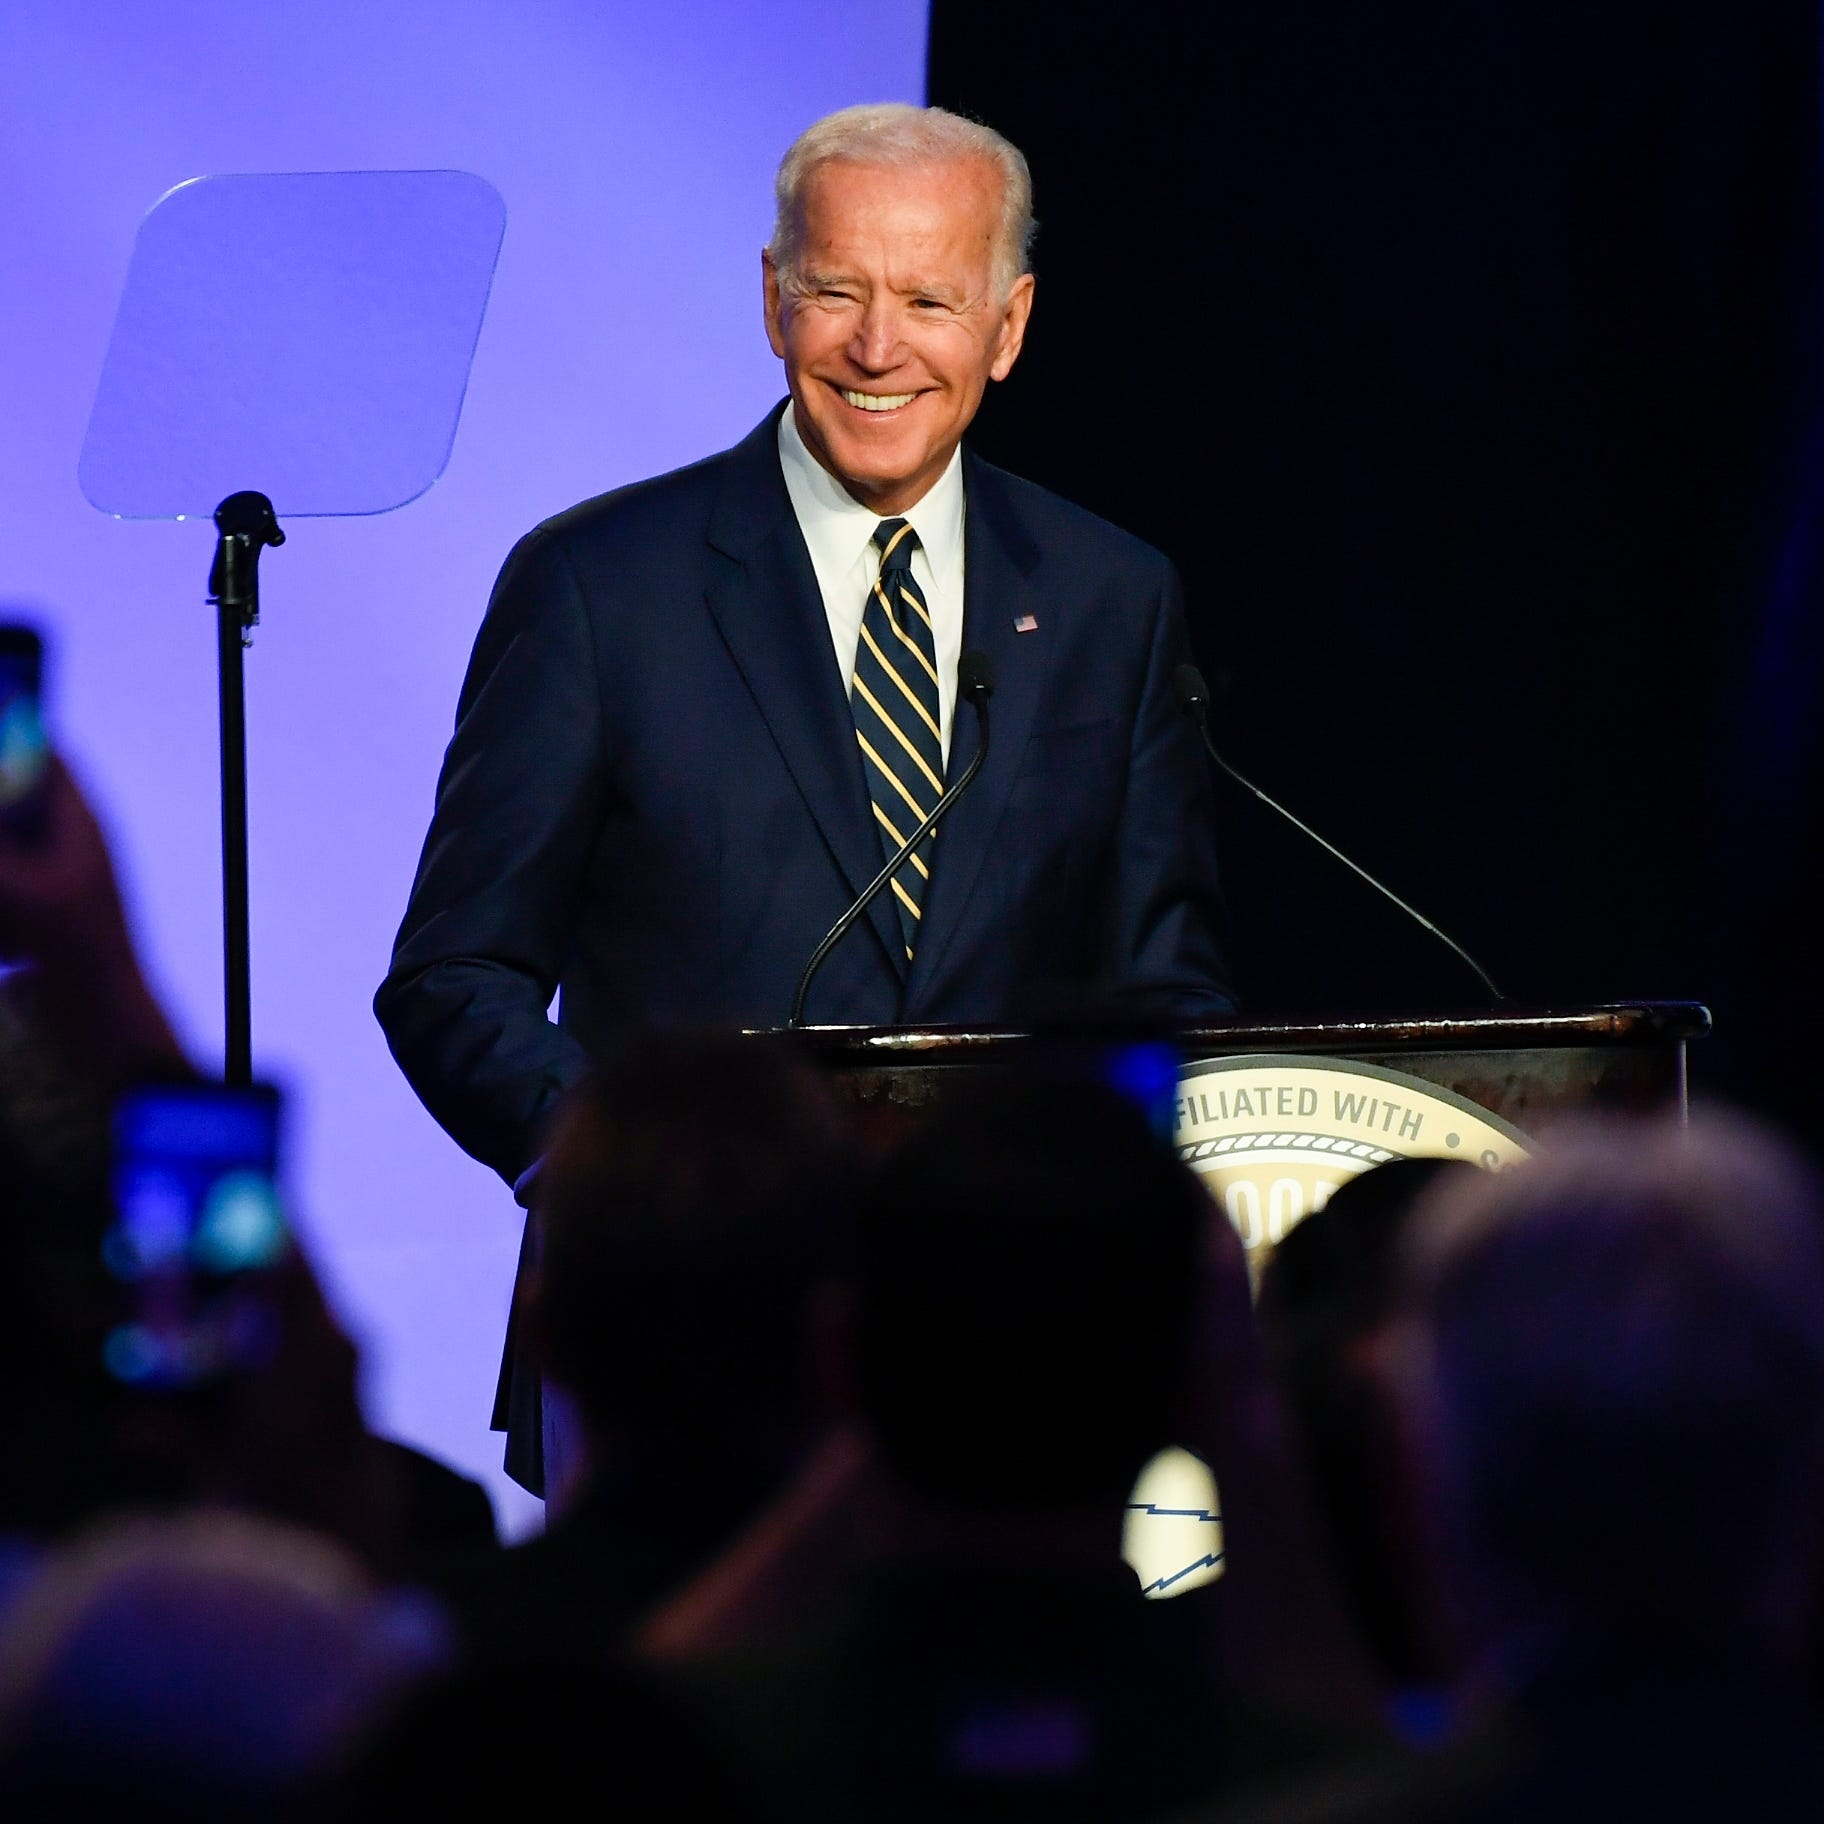 Joe Biden expected to launch 2020 presidential campaign Thursday